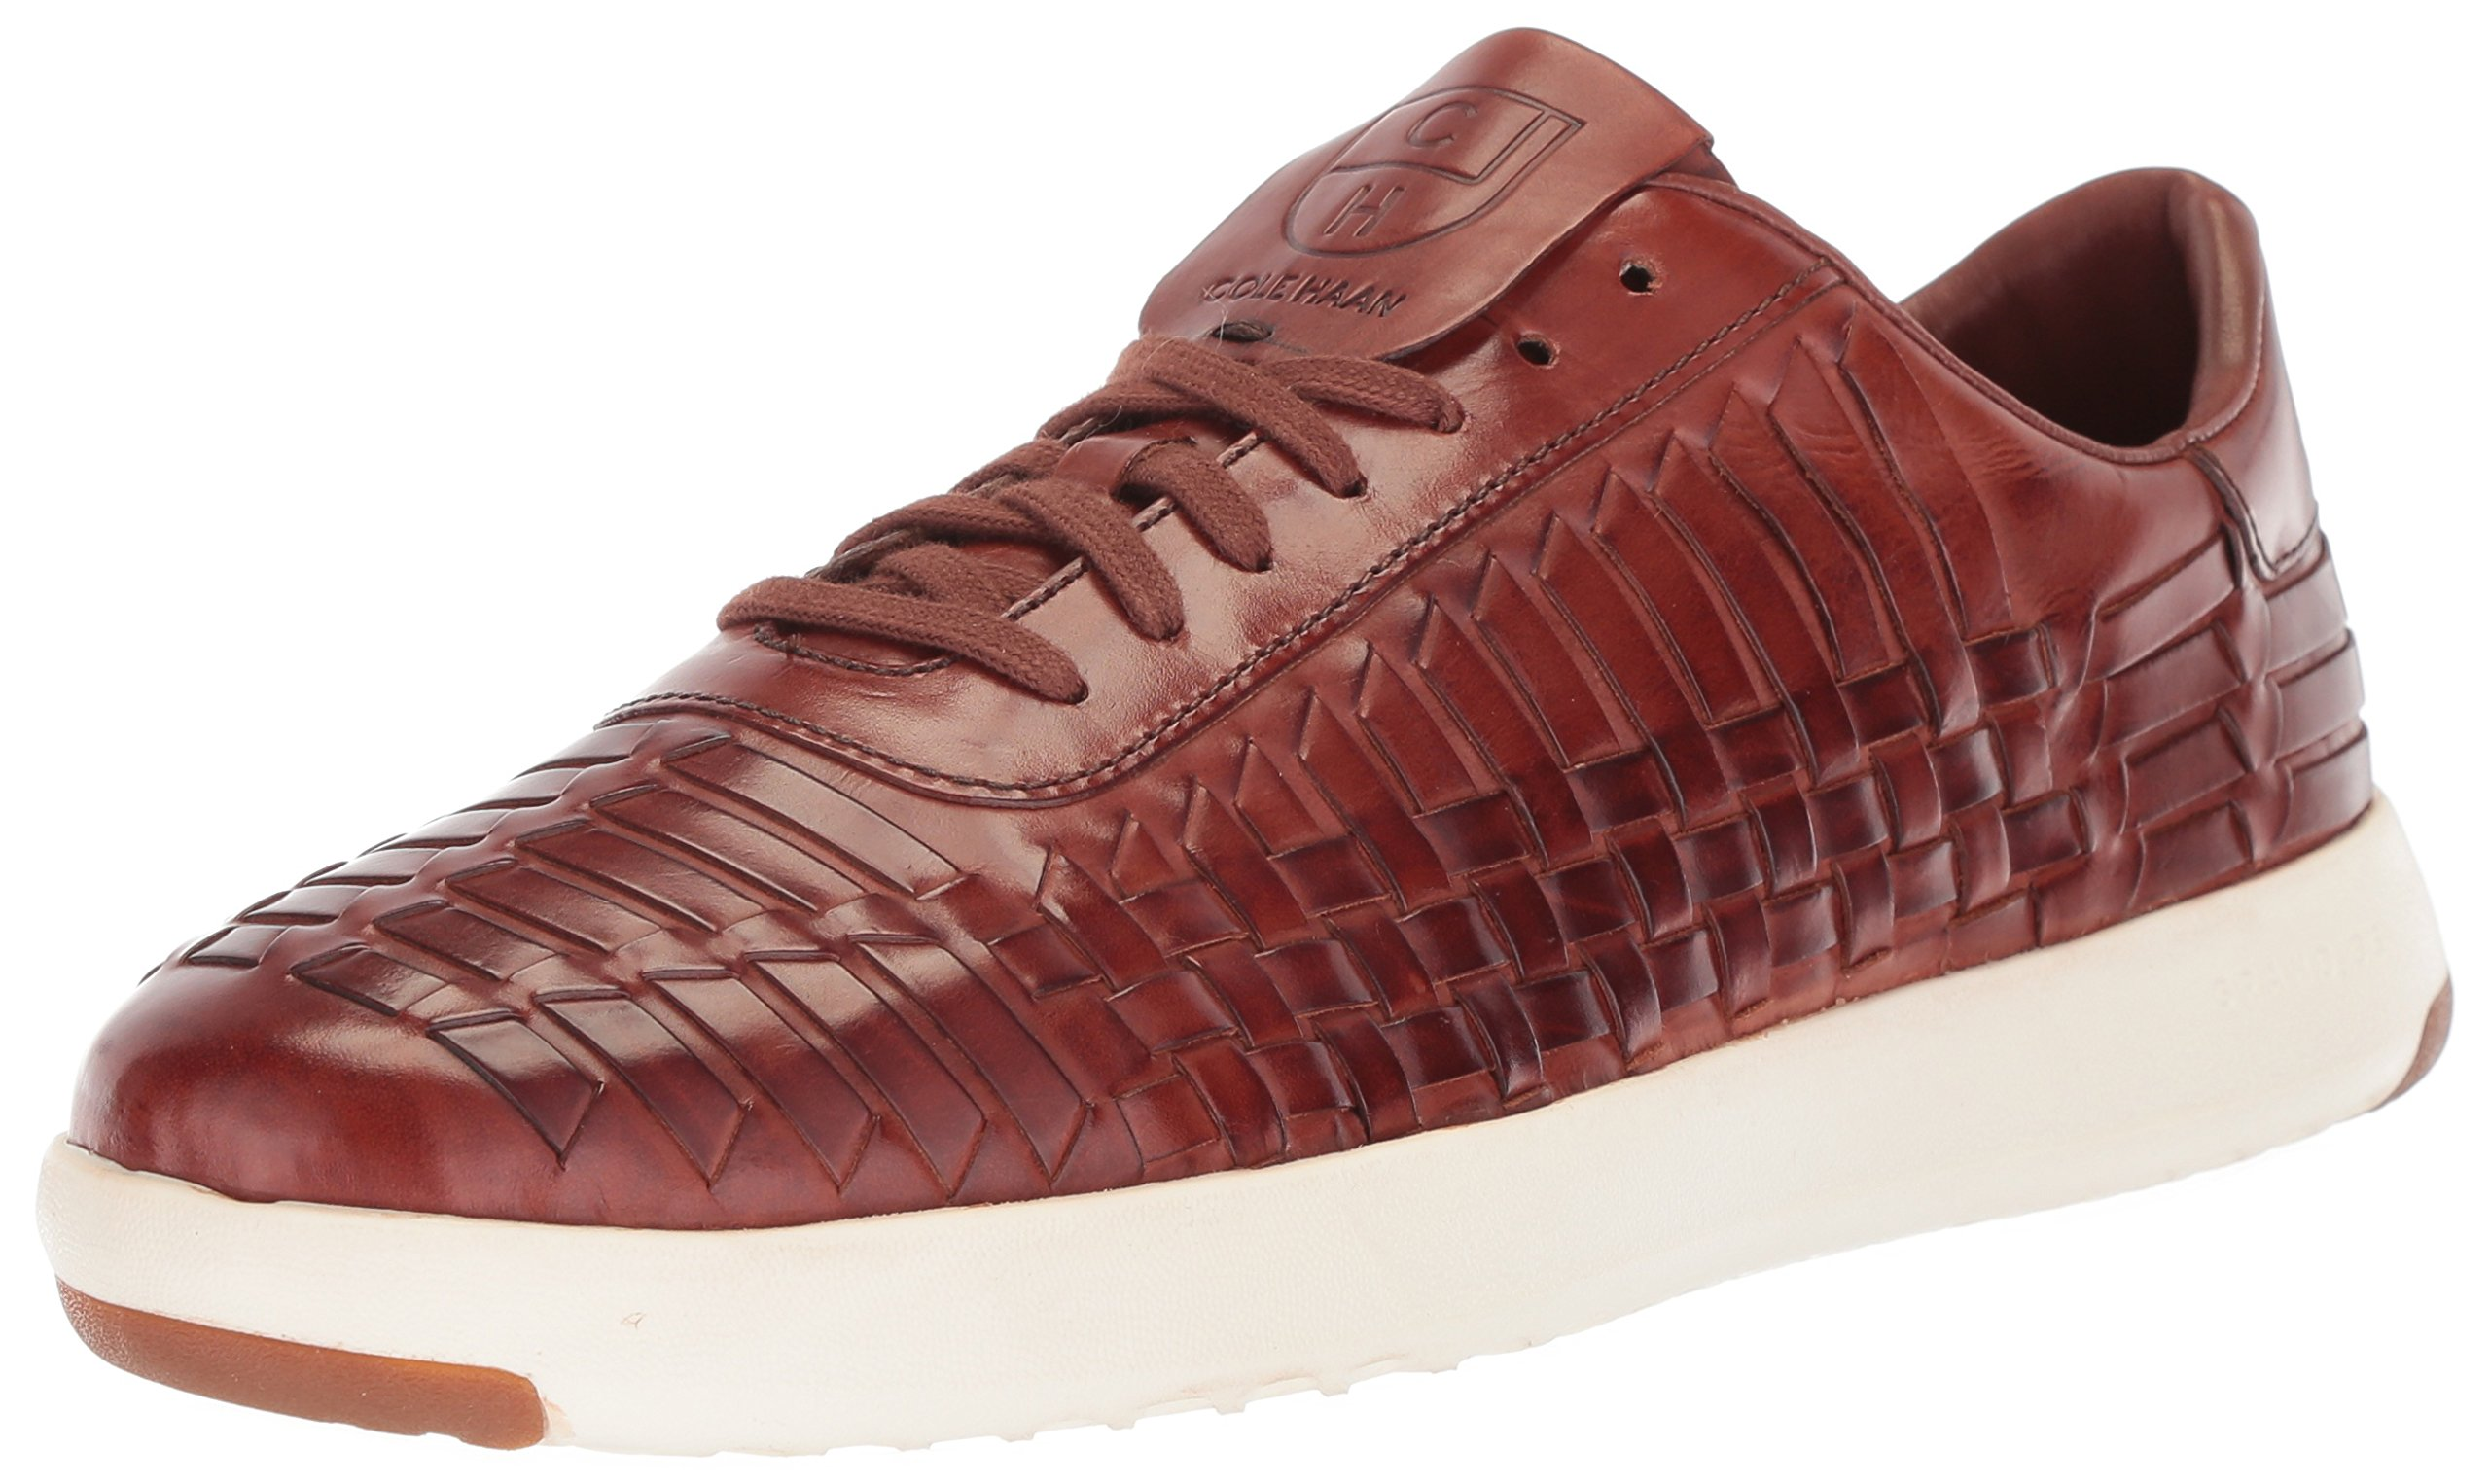 Cole Haan Men's Grandpro Tennis Huarache Sneaker, Woodbury Woven Burnish, 10.5 Medium US